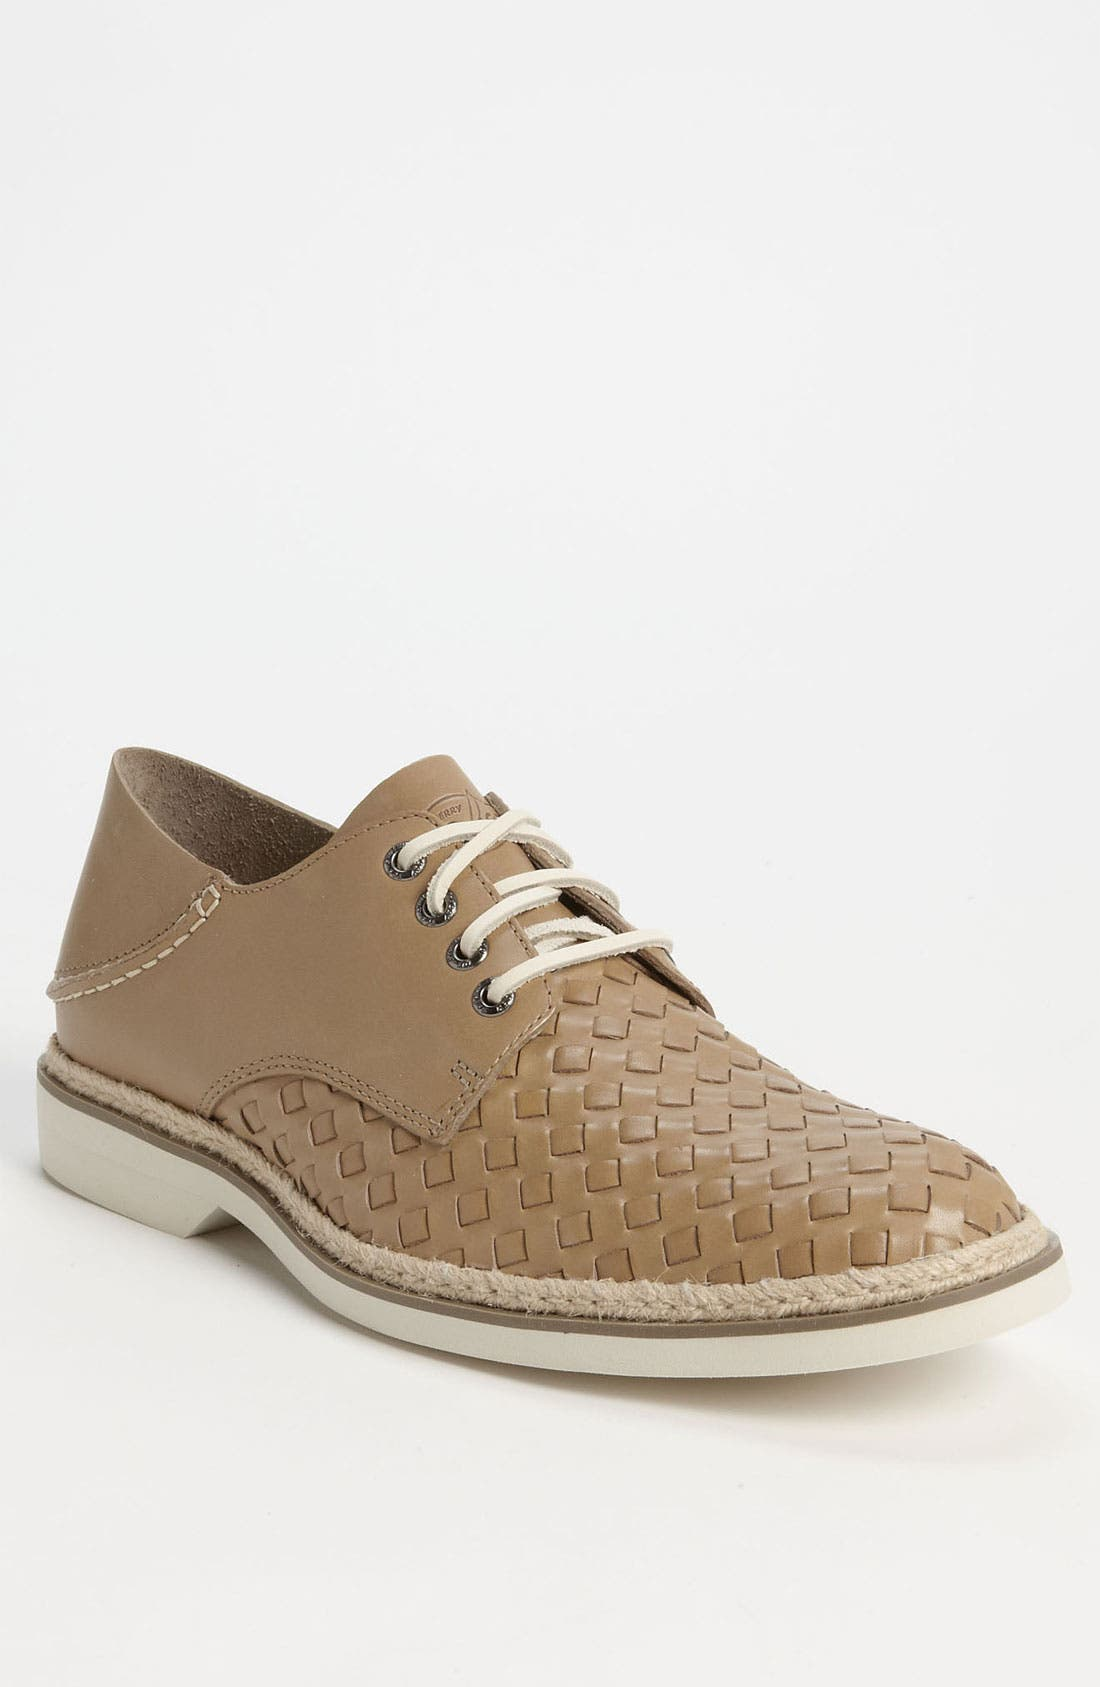 Alternate Image 1 Selected - Sperry Top-Sider® 'Boat Ox' Woven Buck Shoe (Online Only)